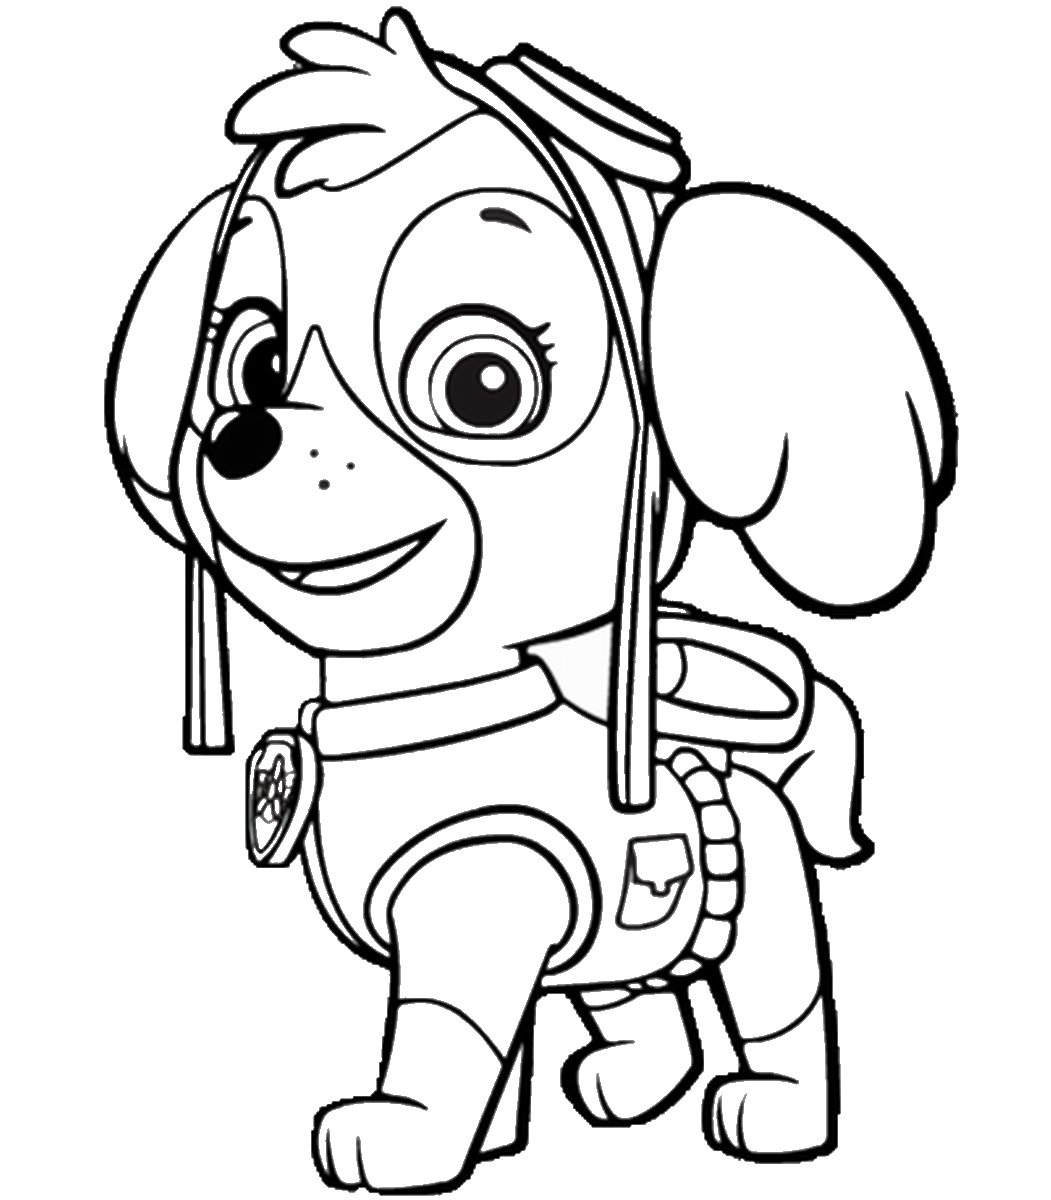 paw patrol coloring pages for boys  educative printable